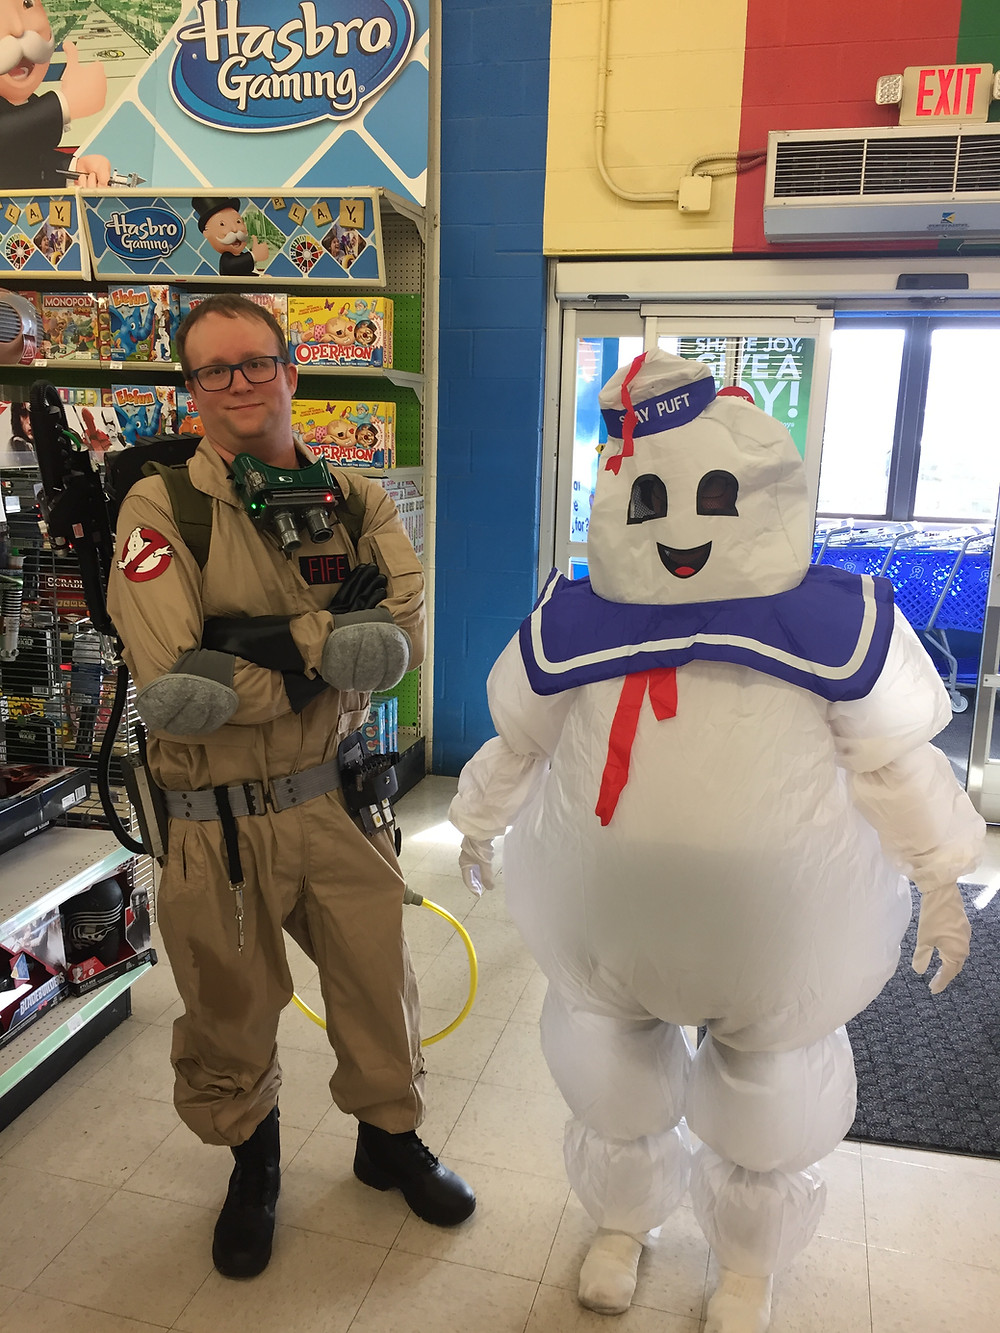 A Ghostbuster and the Stay-Puft Marshmallow Man.